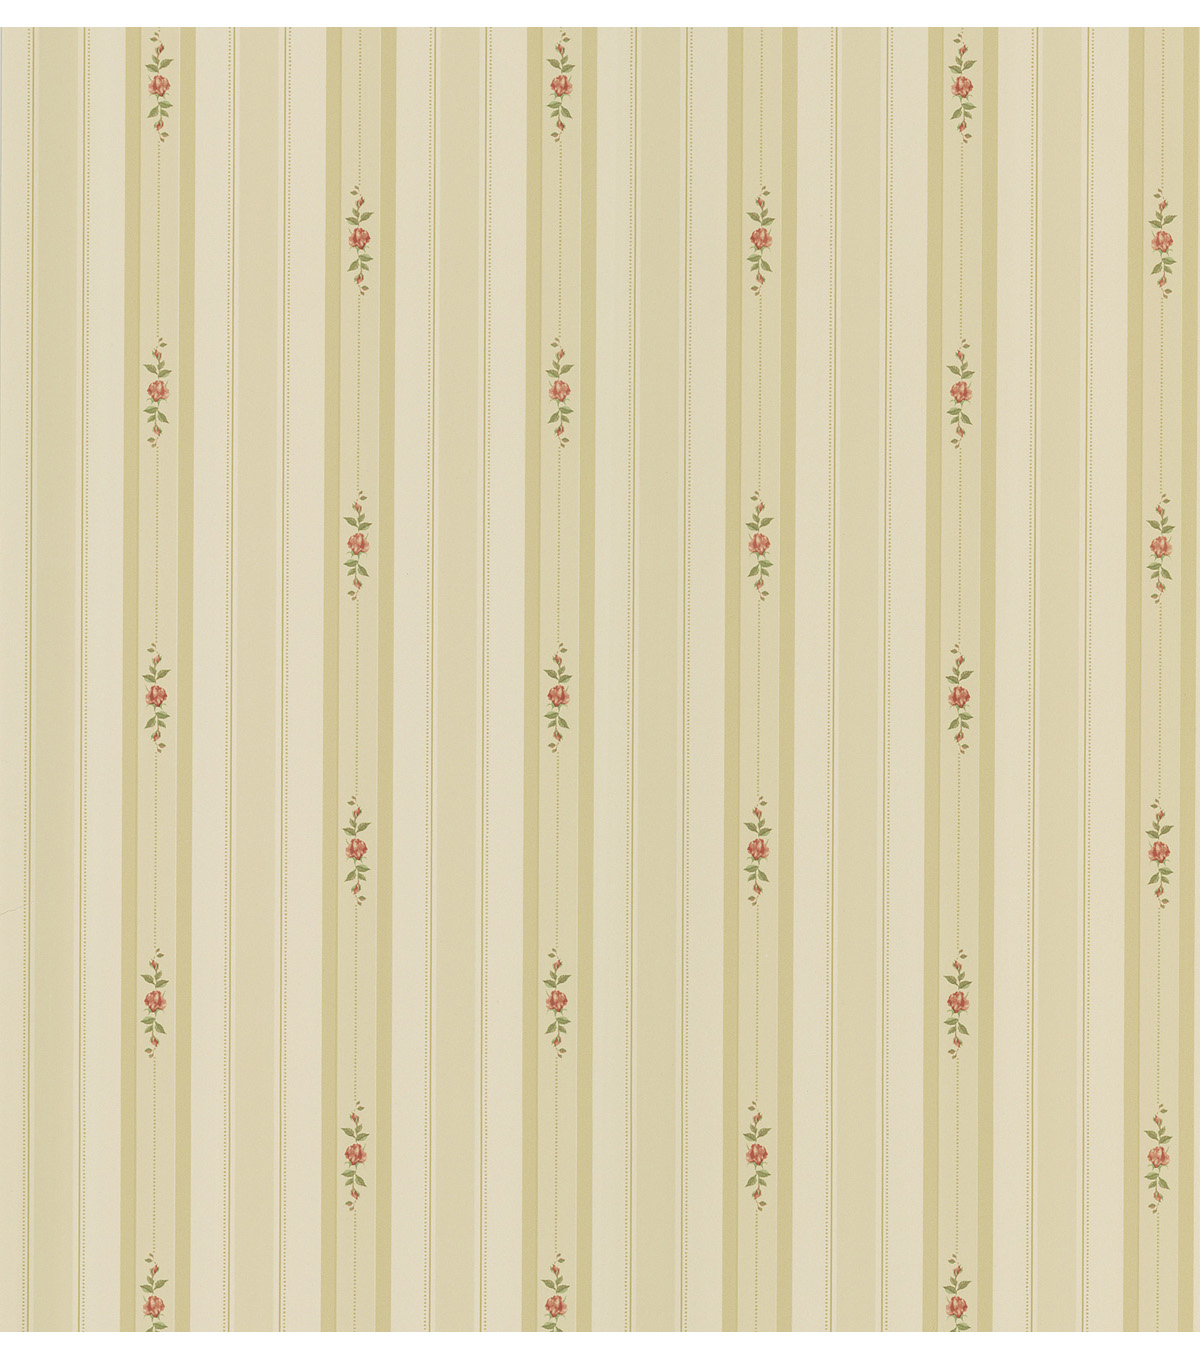 Rosebud Beige Floral Stripe Wallpaper Sample